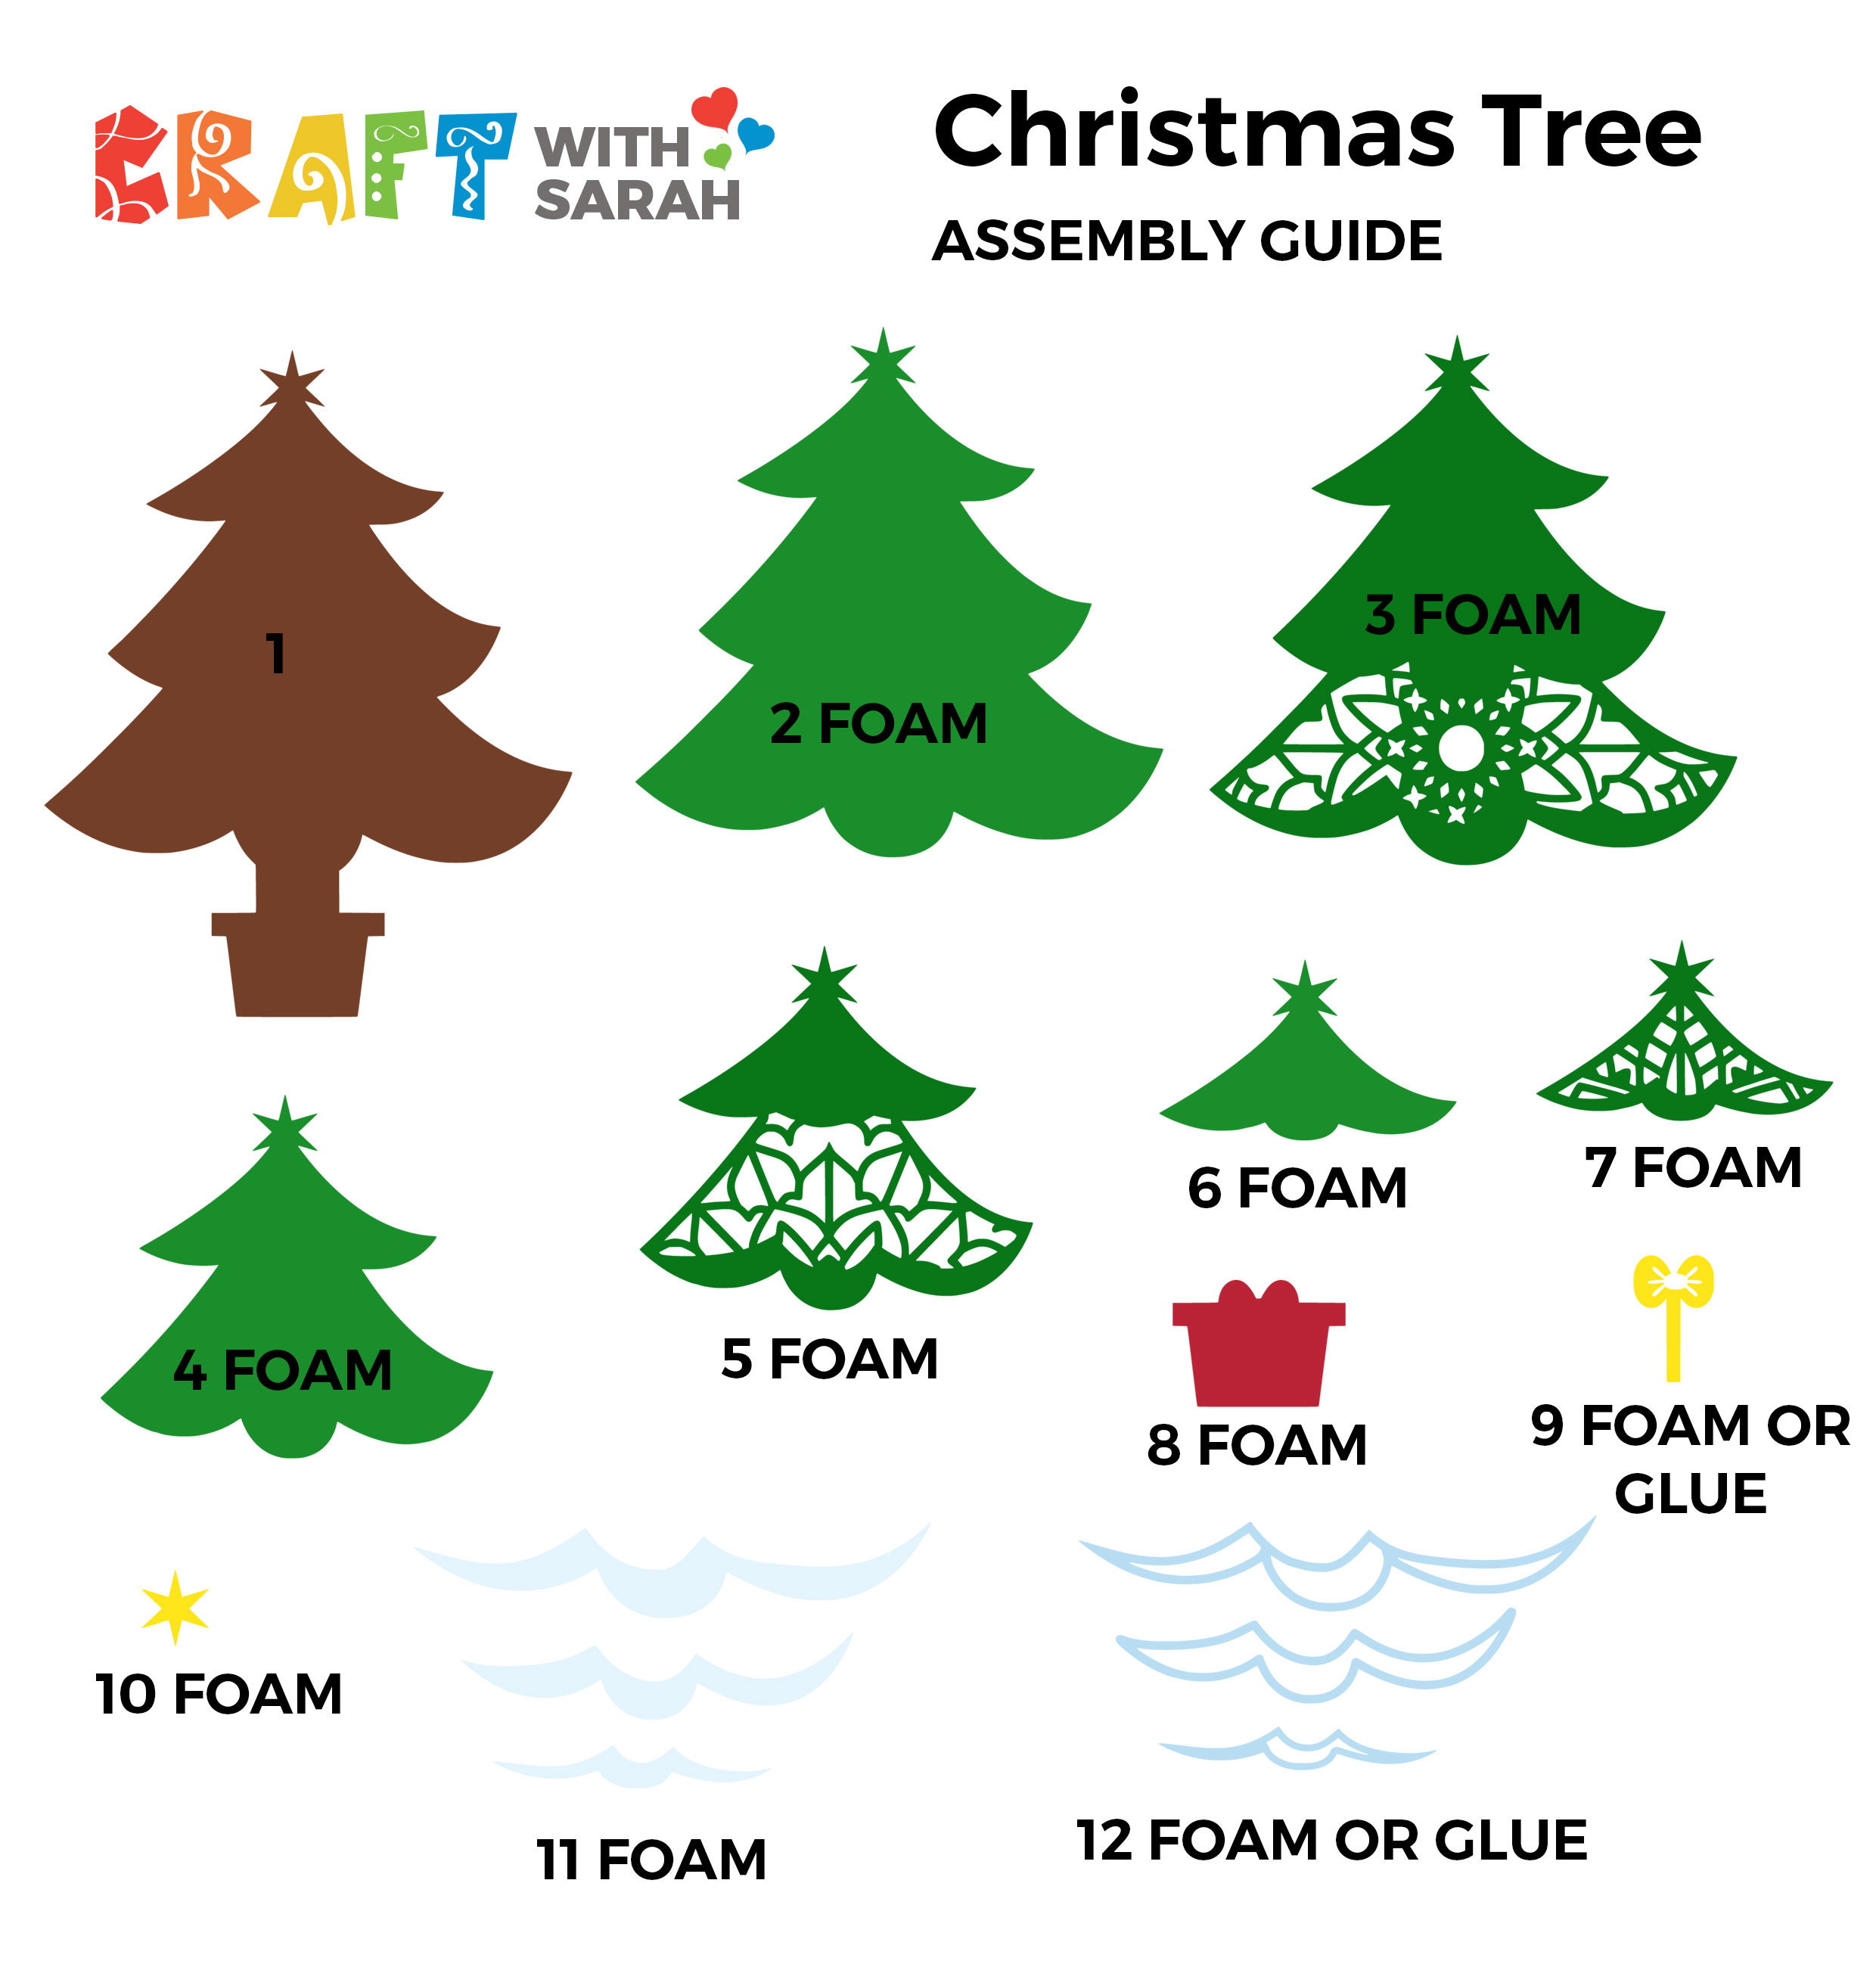 Layered Christmas tree assembly guide